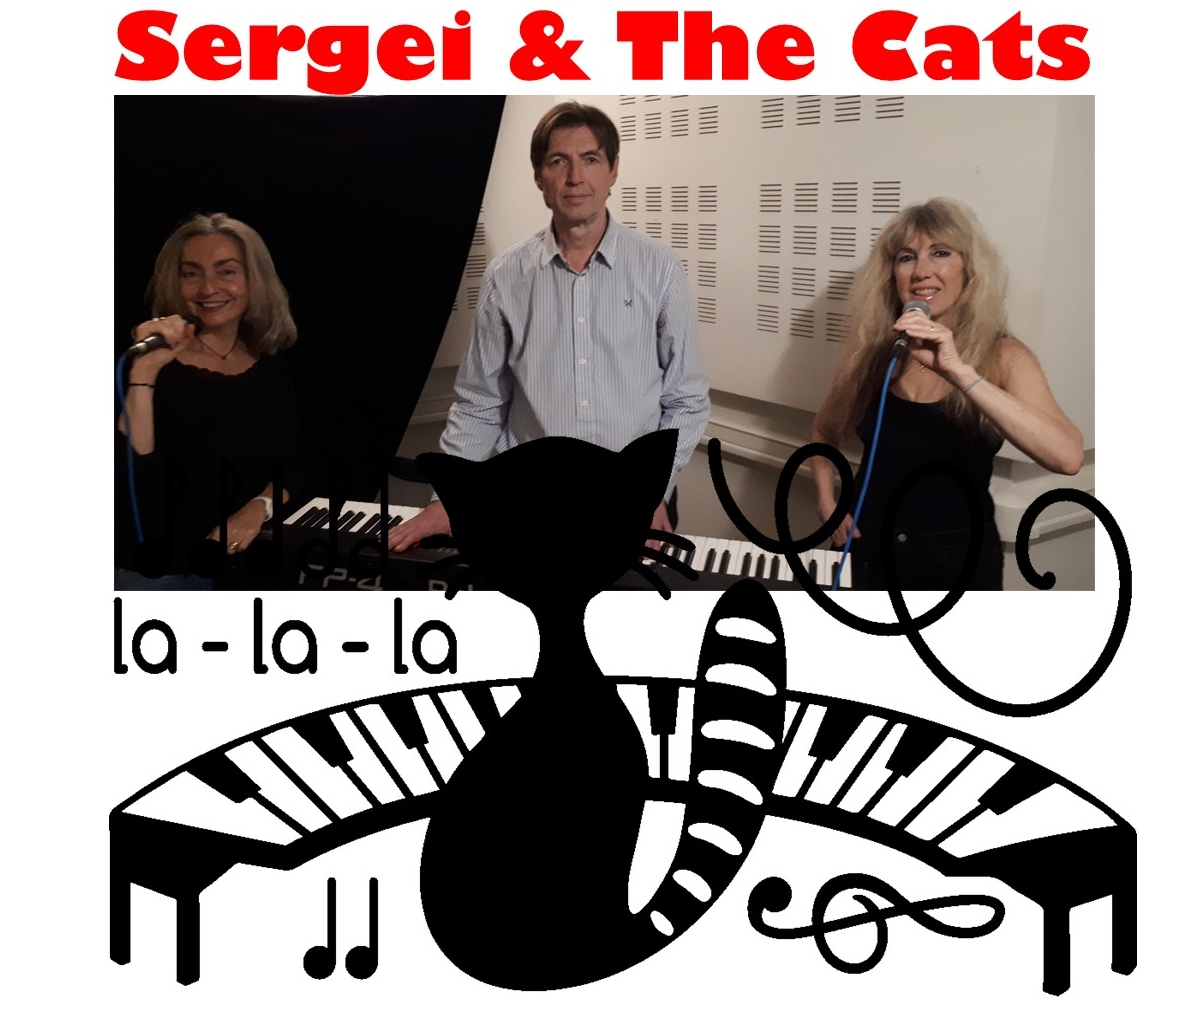 Piano bar - Sergei and the cats